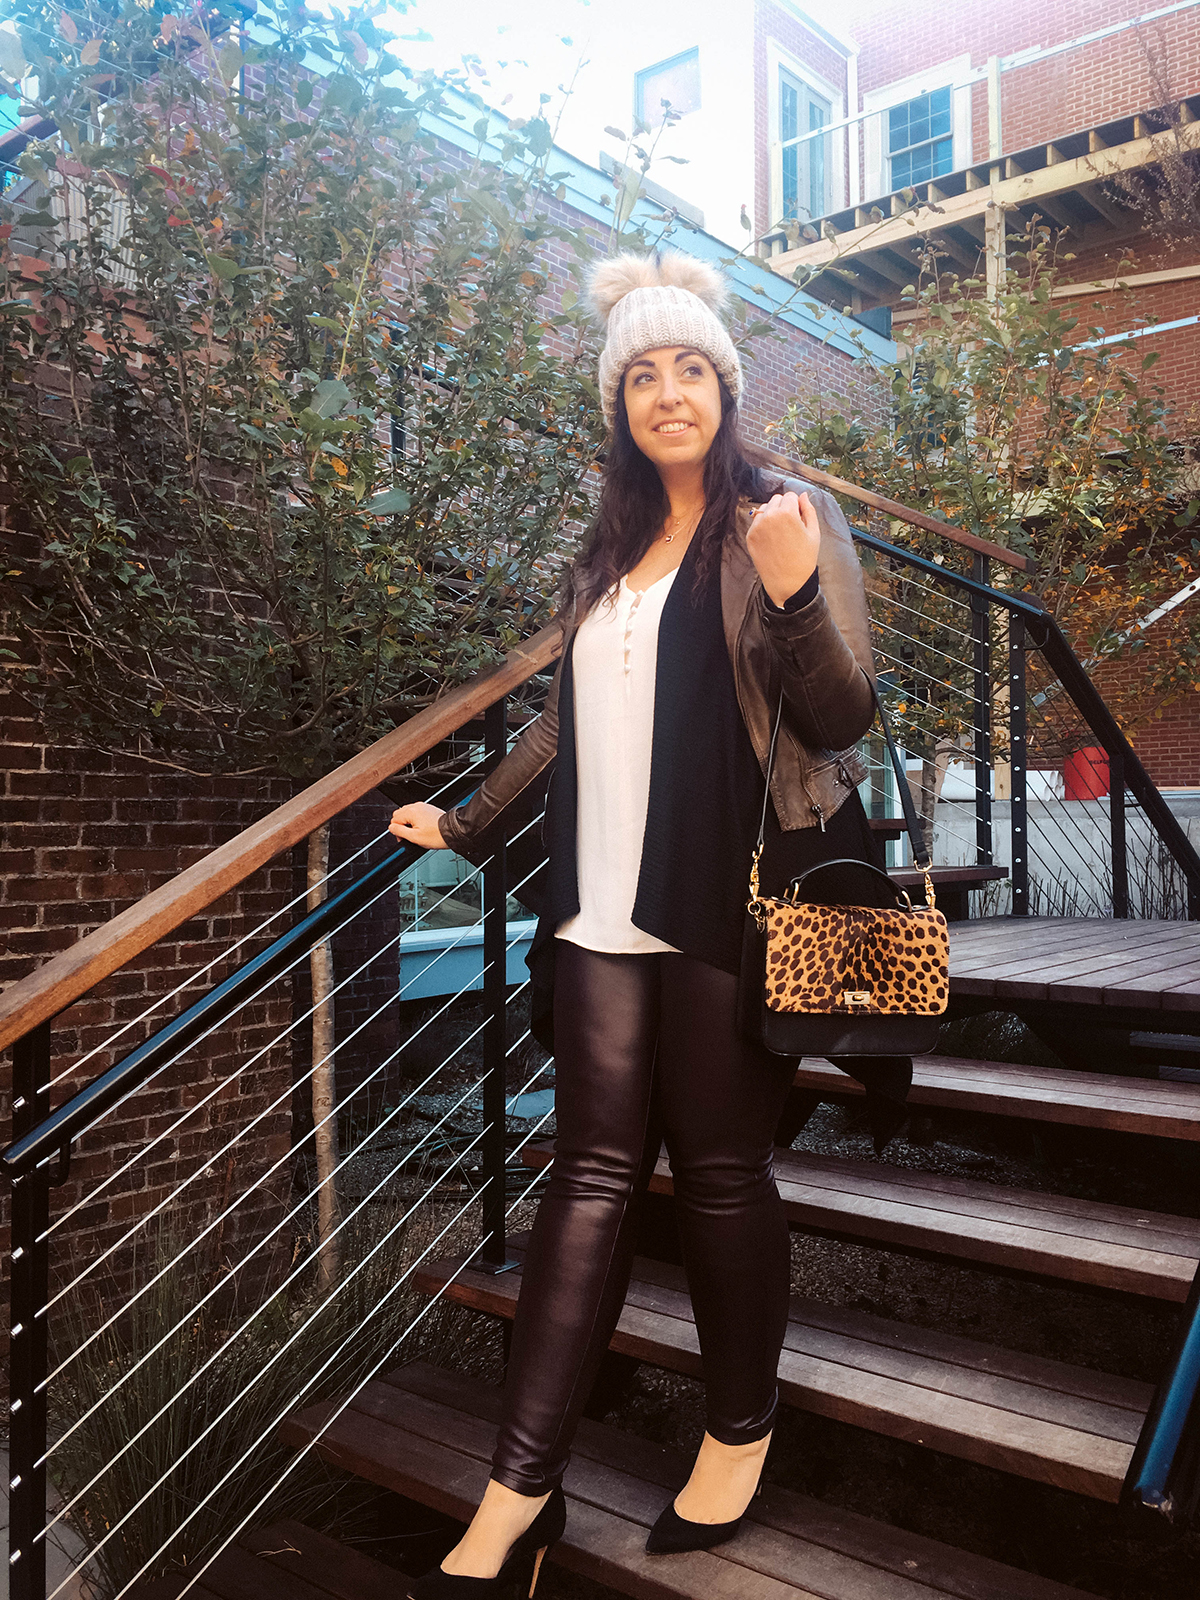 OOTD: Leather Leggings for the country featuring Madewell Washed Leather Moto, Banana Republic Luxespun Ribbed Waterfall Cardigan, LOFT Double Layer Stone Pendant Necklace, Amazon Fashion 2 Pom Ears Cable Knit Hat, J. Crew Edie Crossbody, Loeffler Randall Pari Pump, LOFT Covered Button Down Strappy Cami and LOFT Leggings in Faux Leather :: Effortlessly with Roxy